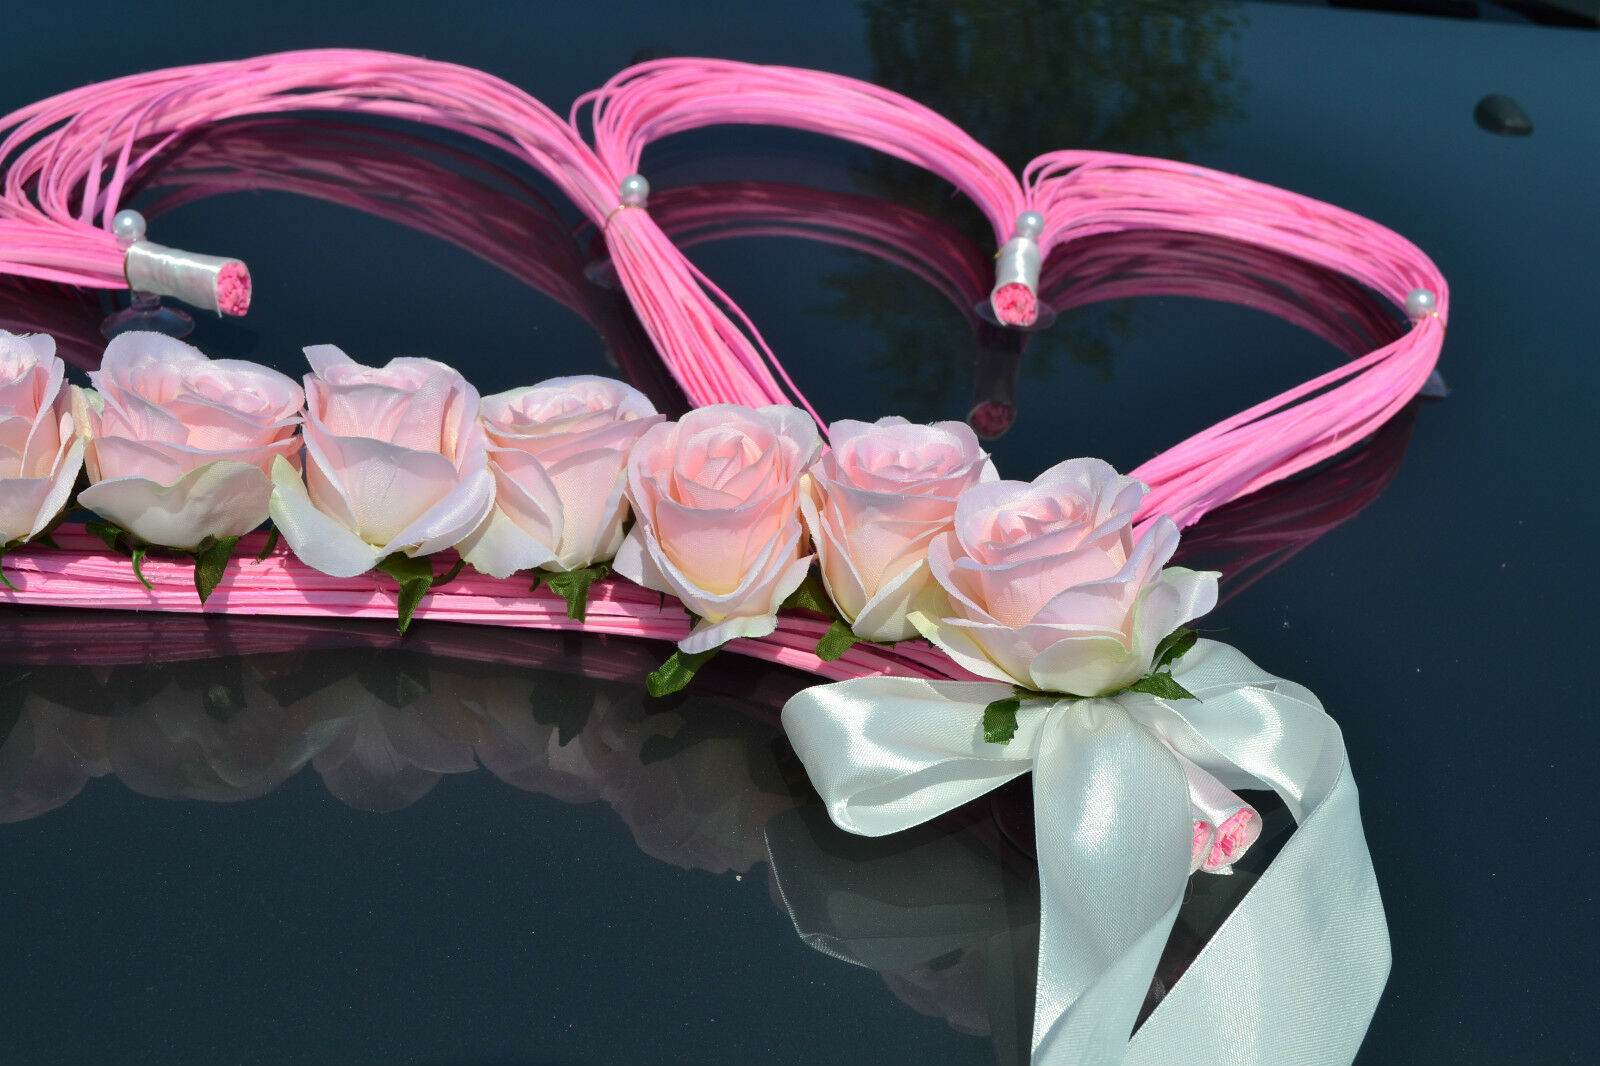 Wedding car decoration,ribbon, bows, prom limousine decoration, HEARTS Rosa Rosa Rosa ecru 9c2c1f